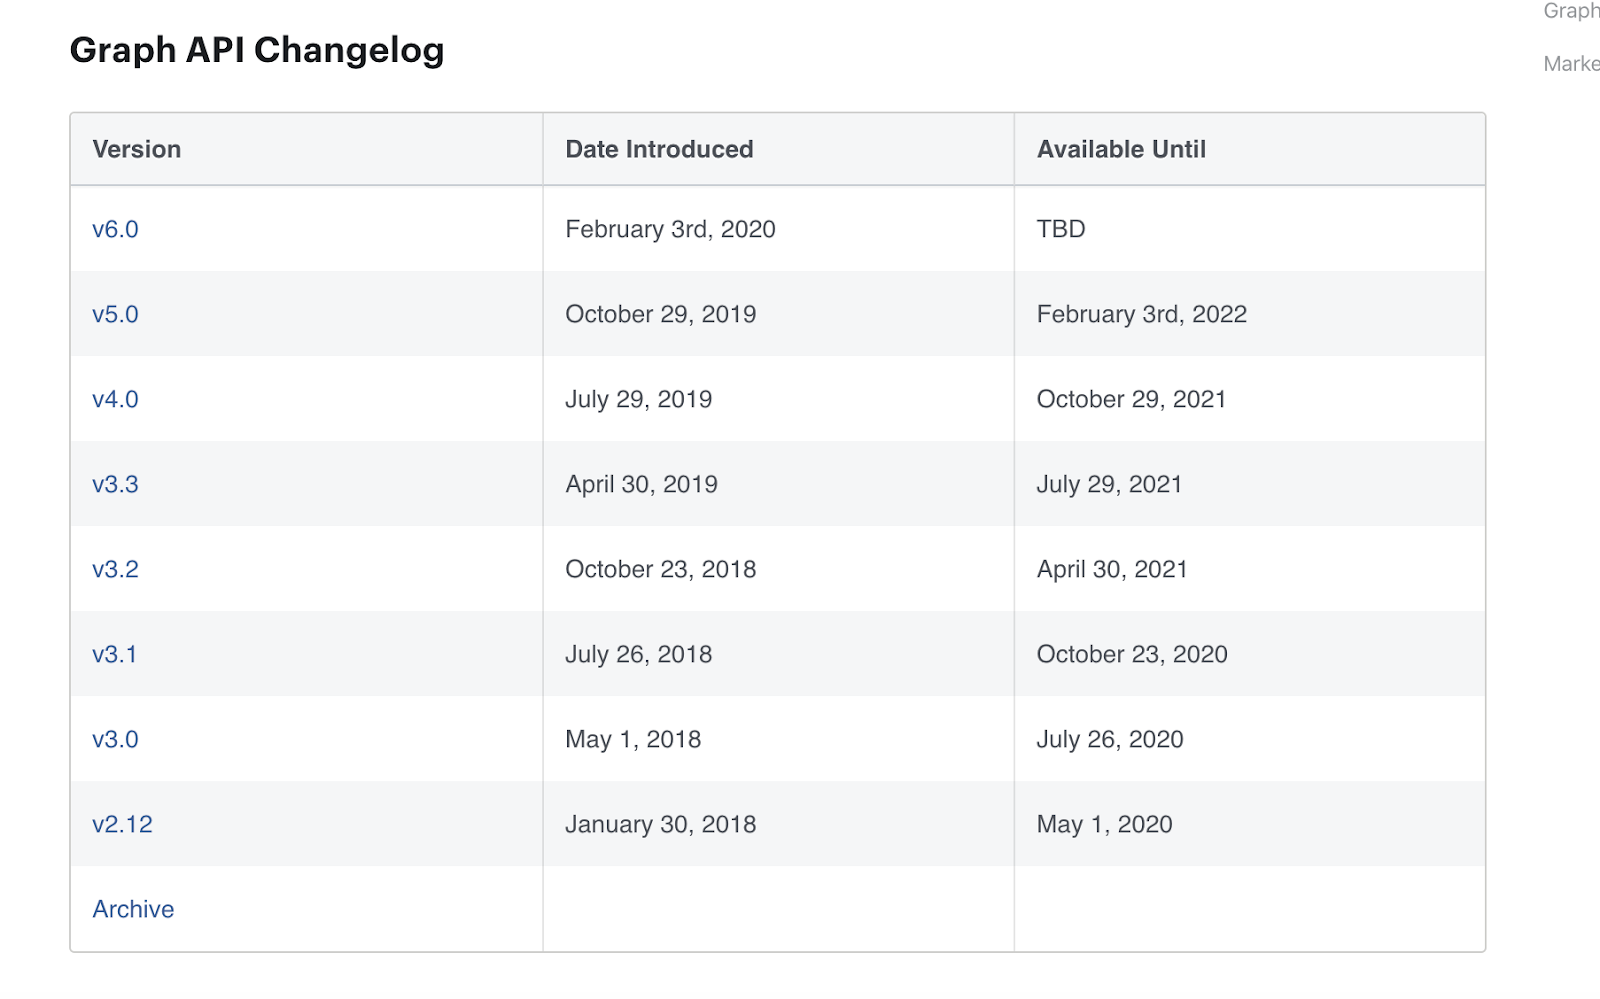 Facebook API updates: Version, Date Introduced, Available Until